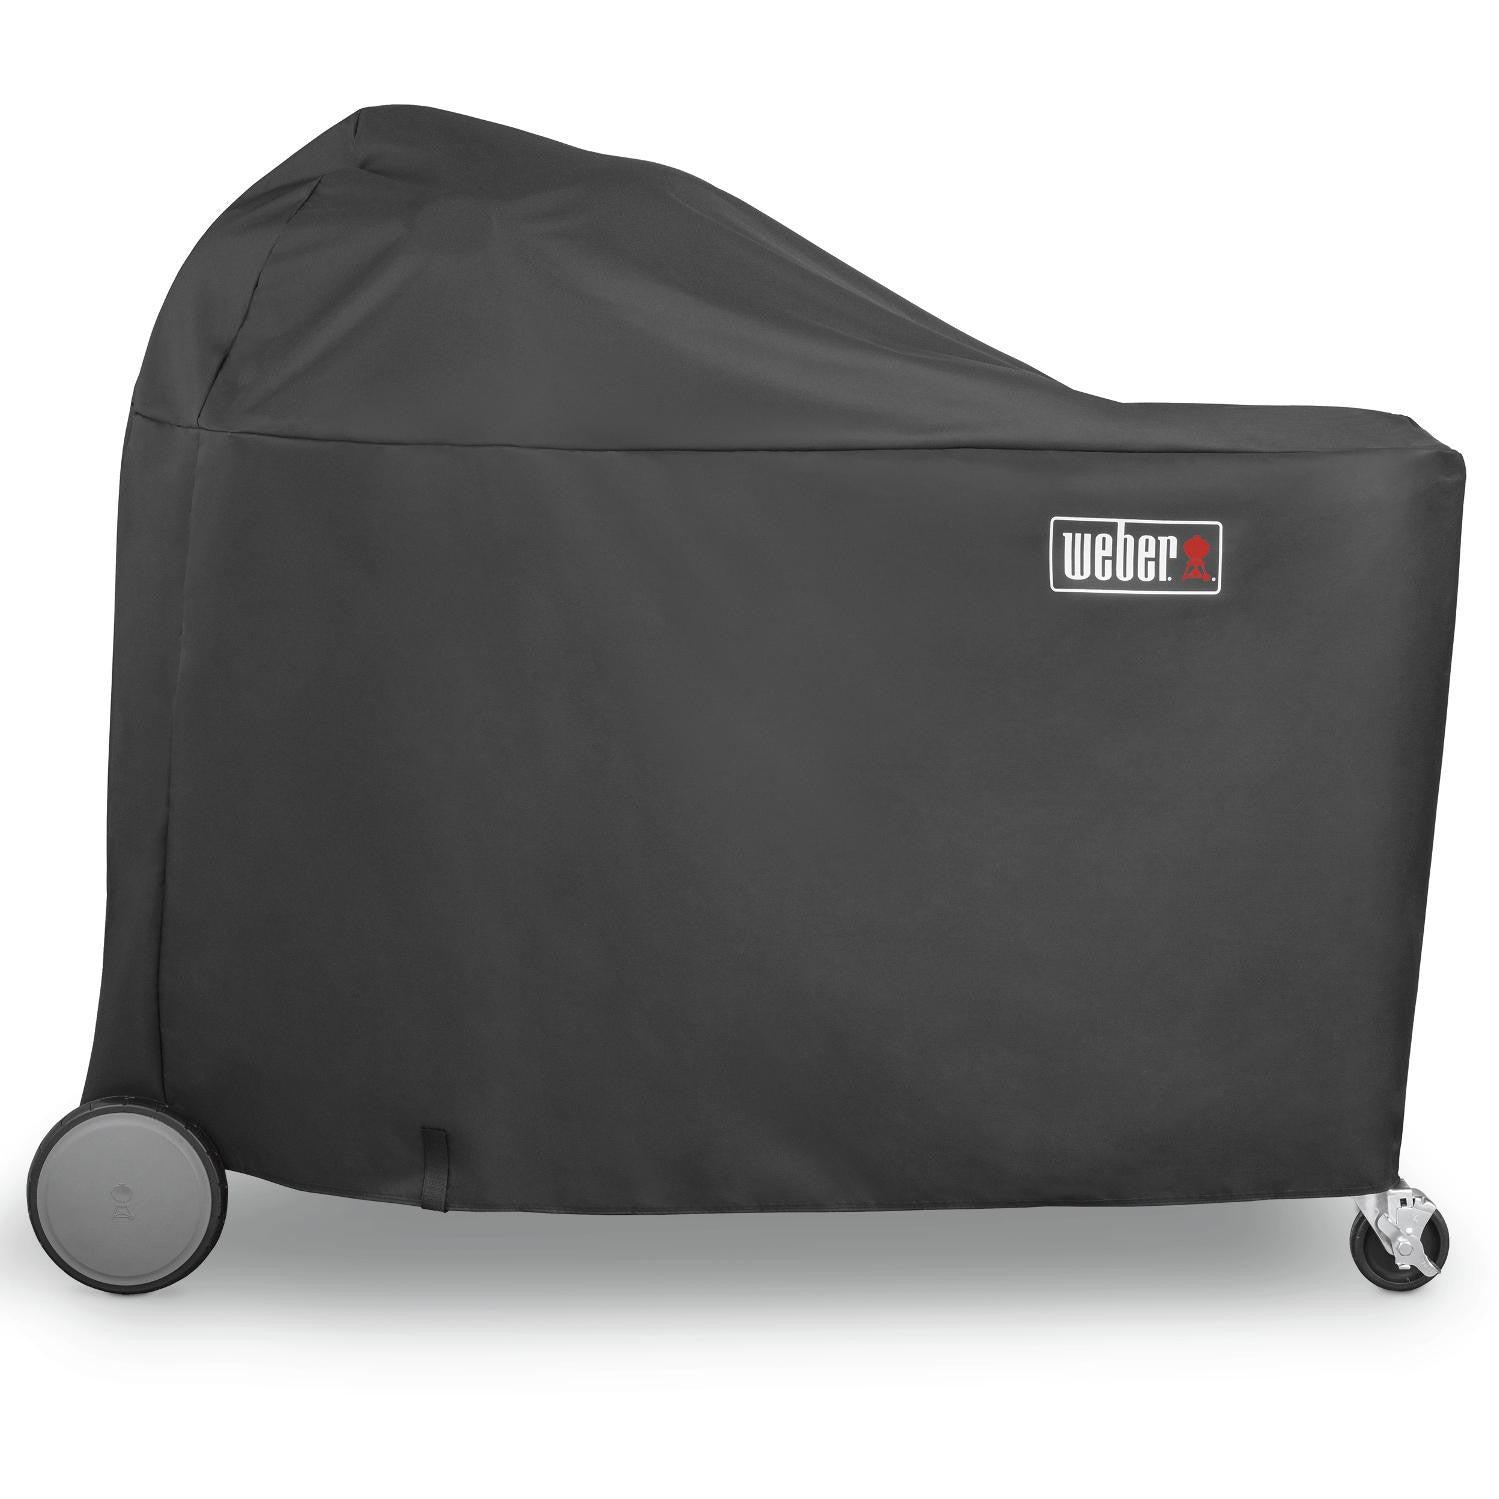 Weber 7174 Grill Cover For Summit Charcoal Grilling Center